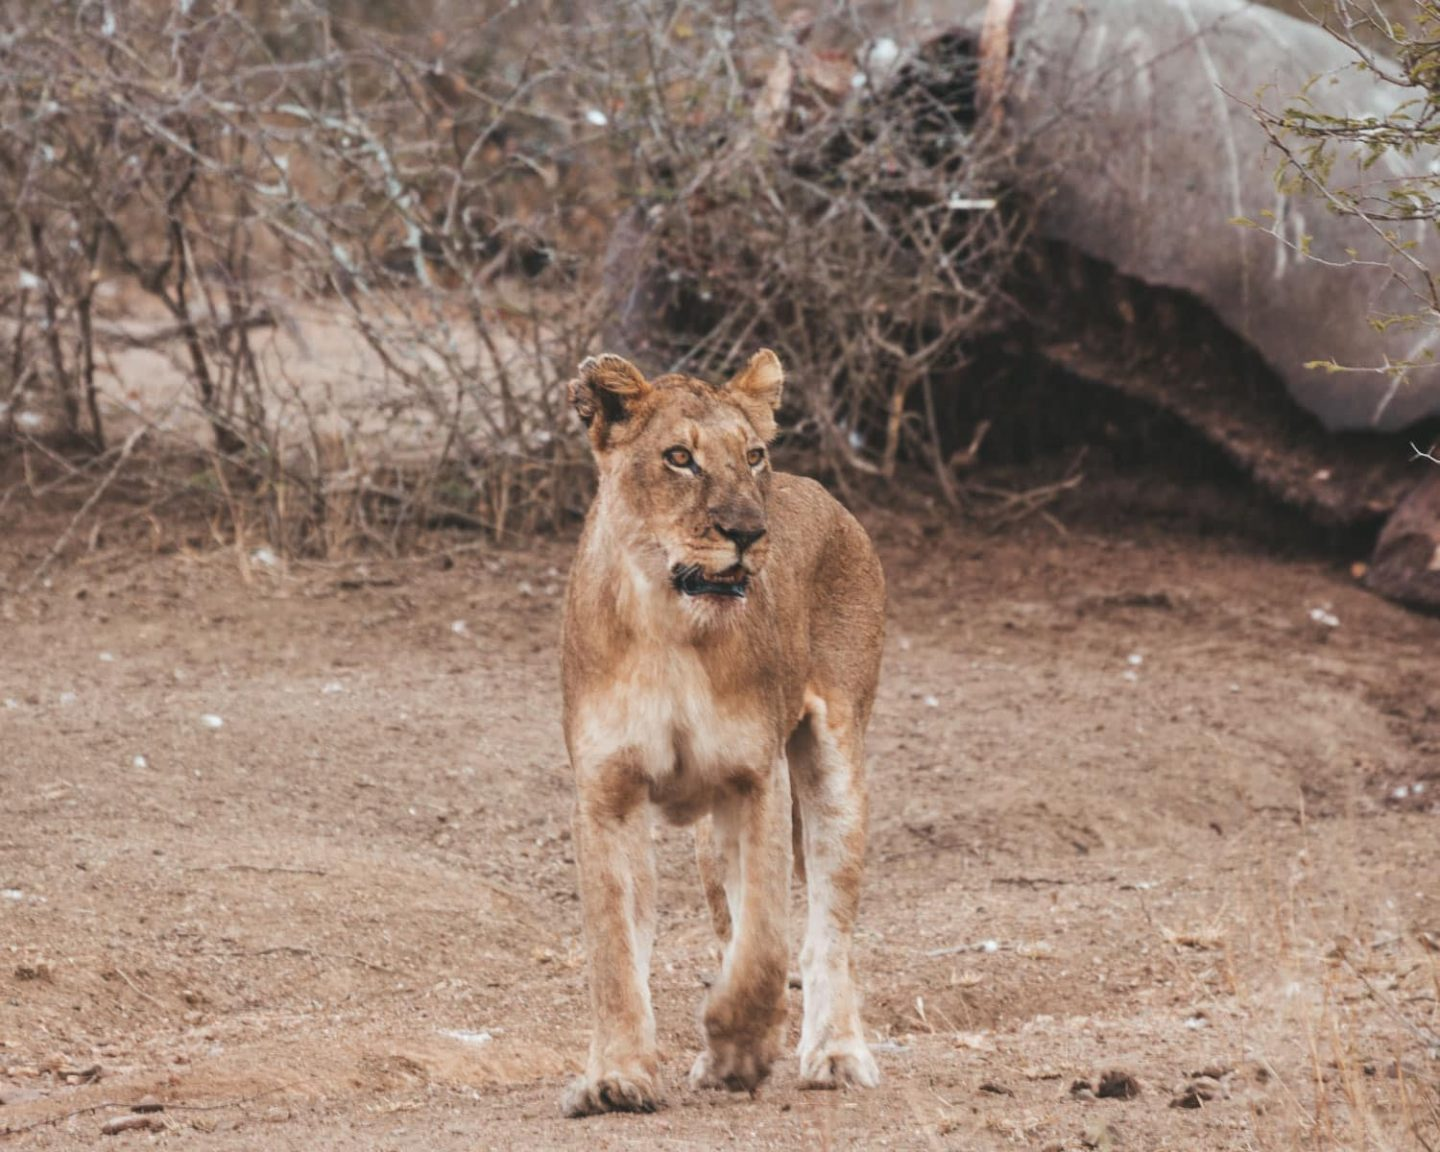 lioness in kruger national park